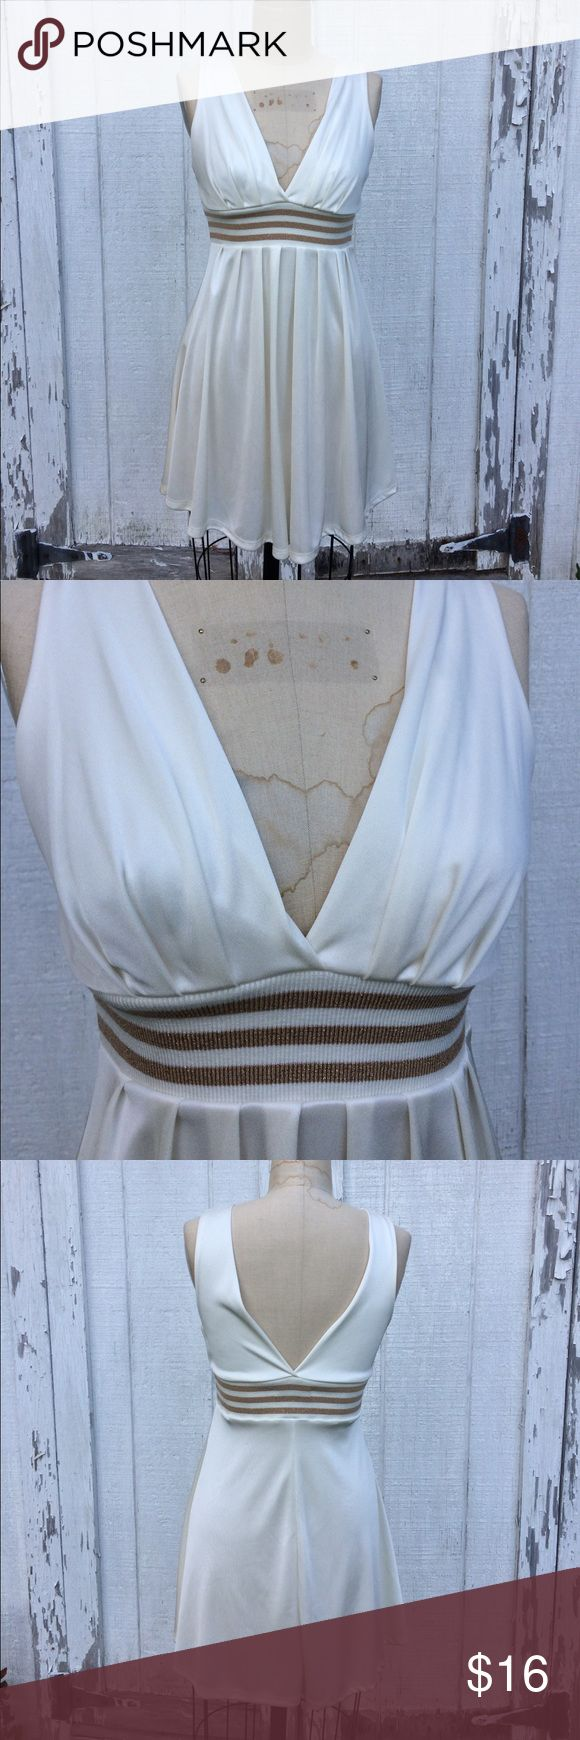 "💕SALE🐬Forever 21 Cream and Gold Dress Forever 21 stretchy poly Cream dress with deep v-neckline and elastic Sparkly gold and Cream striped waistband. Measurements: chest: 19"" across the front, waist: 15"" across the front, hips: 21"" across the front, length: 34.5"". In excellent condition Forever 21 Dresses Mini"